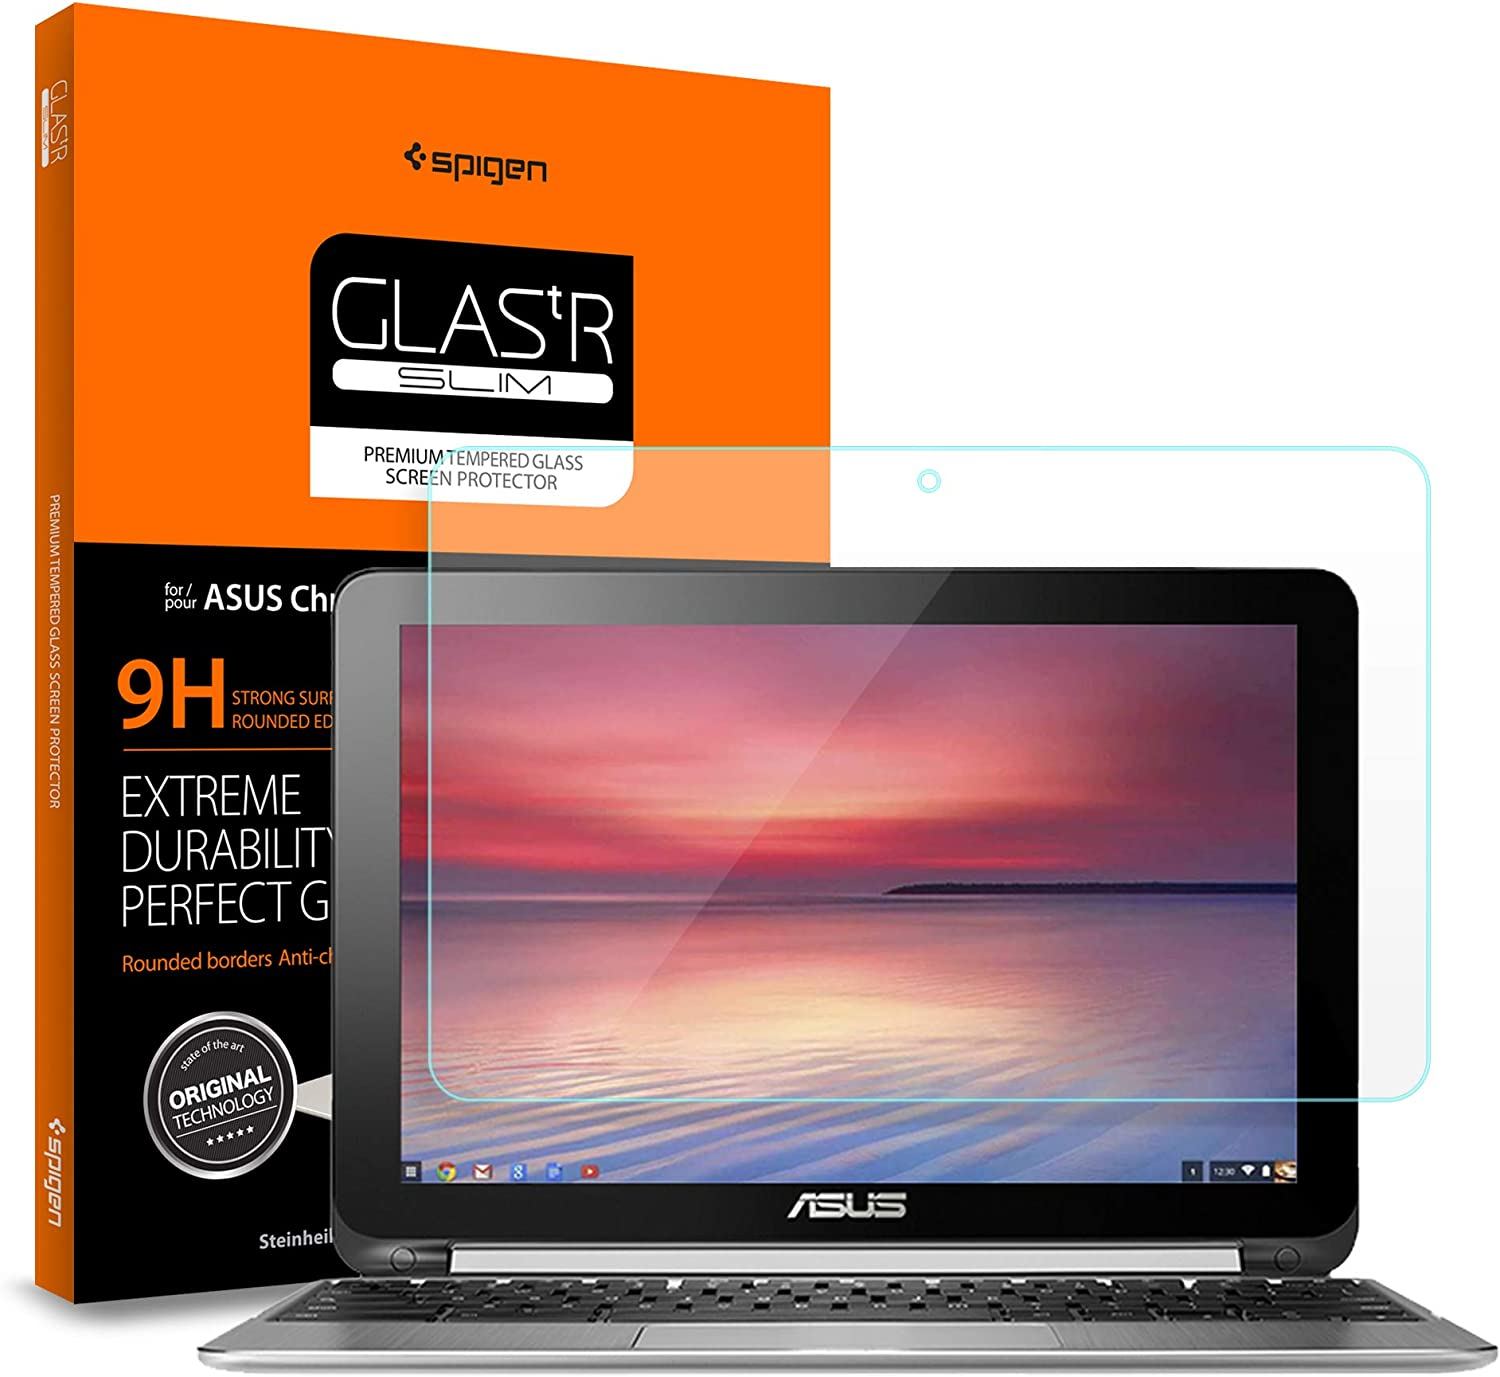 Amazon Com Spigen Tempered Glass Screen Protector Designed For Only Asus Chromebook Flip C100pa Db02 C101pa Db02 10 1 Inch 9h Hardness Computers Accessories